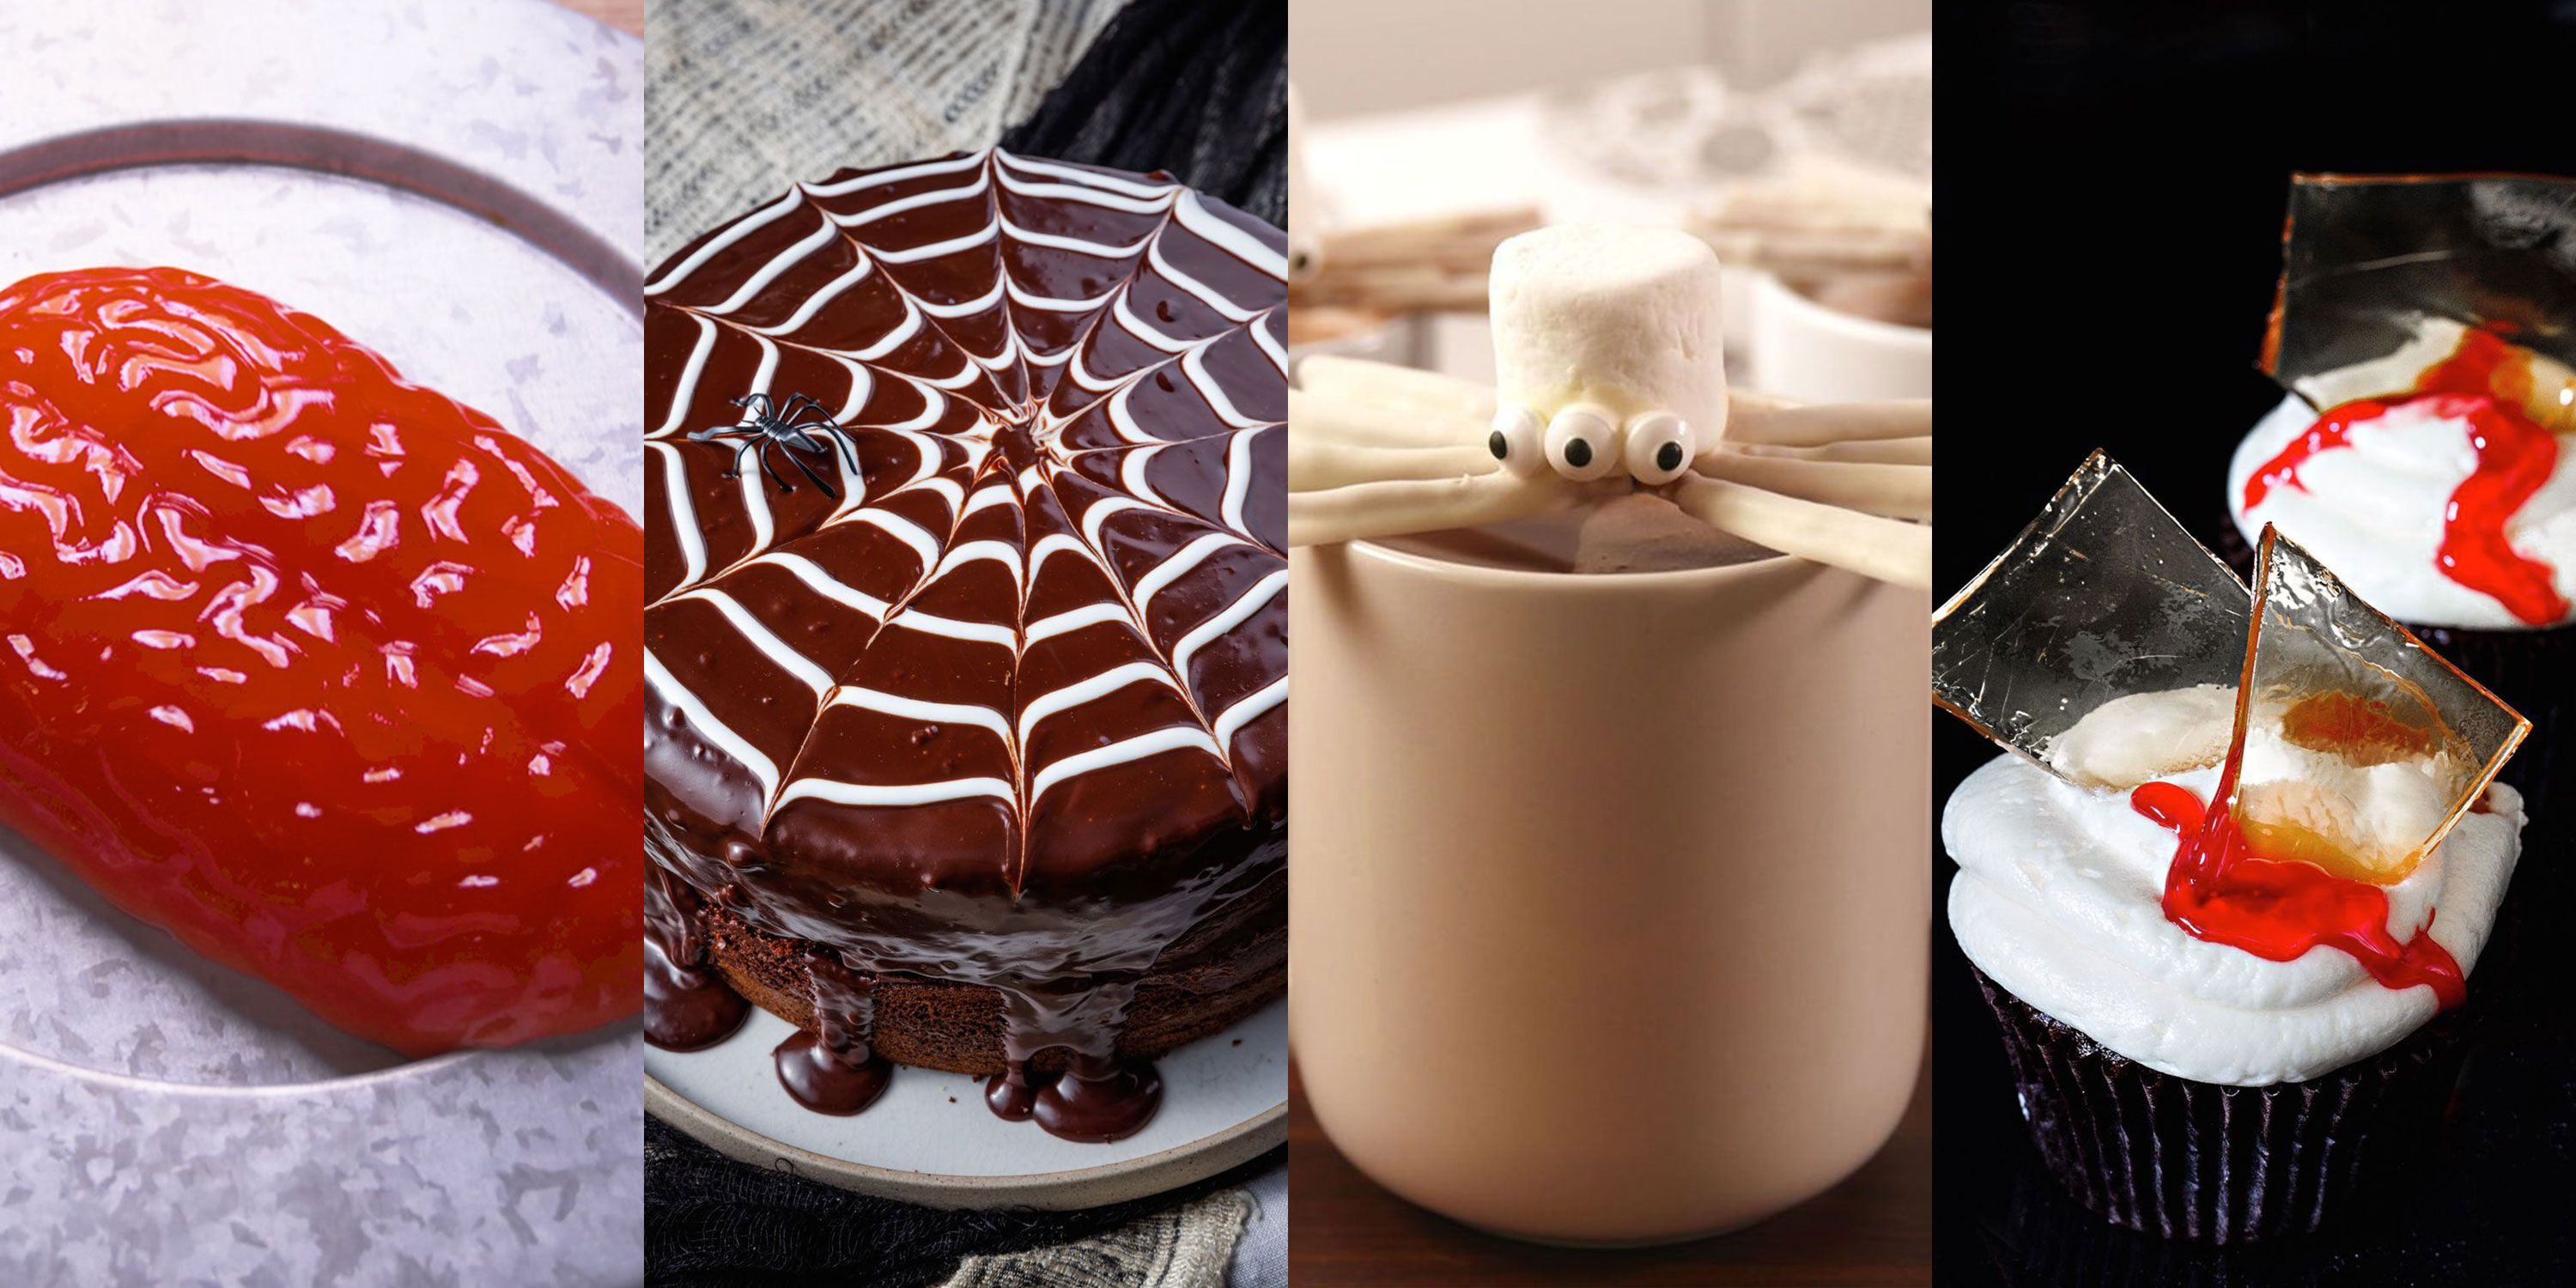 19 easy halloween recipes - gross and scary halloween food ideas